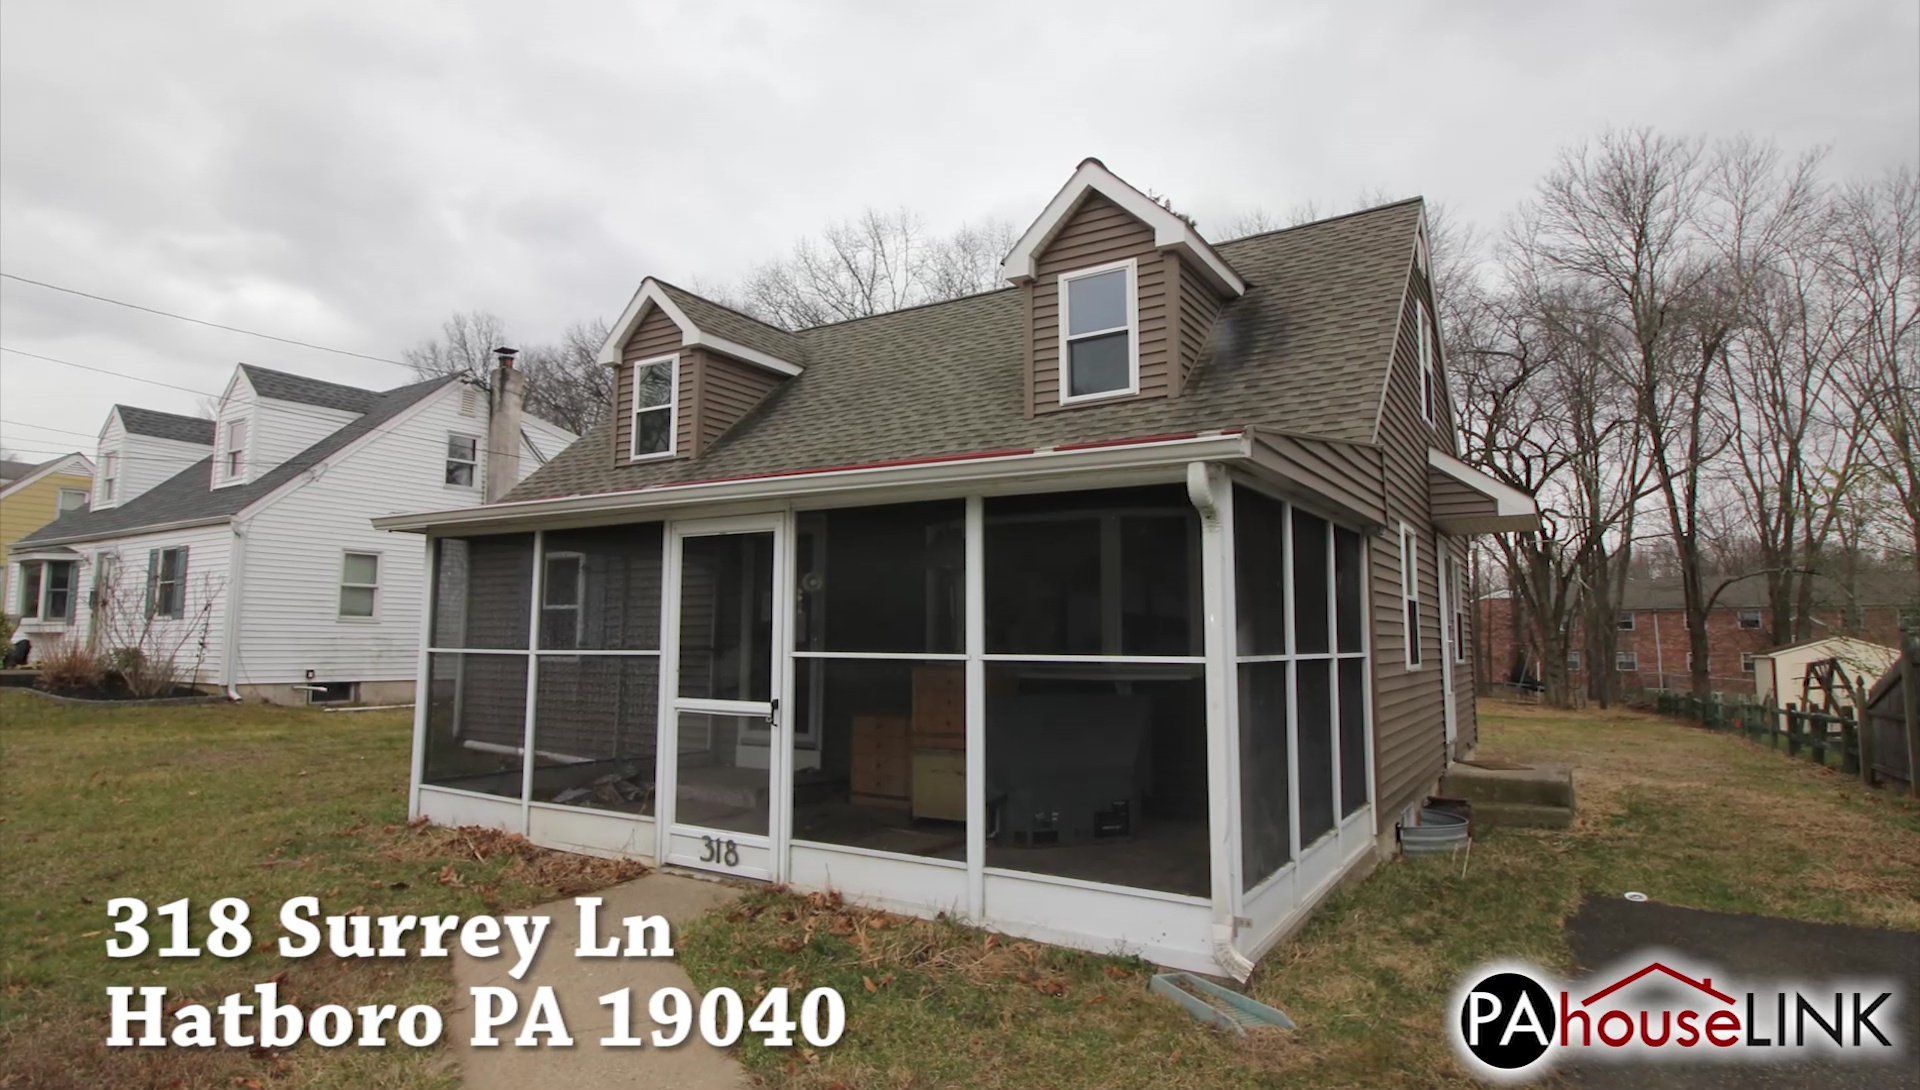 318 Surrey Ln Hatboro PA 19040 | Coming Soon Foreclosure Properties Hatboro PA 19040